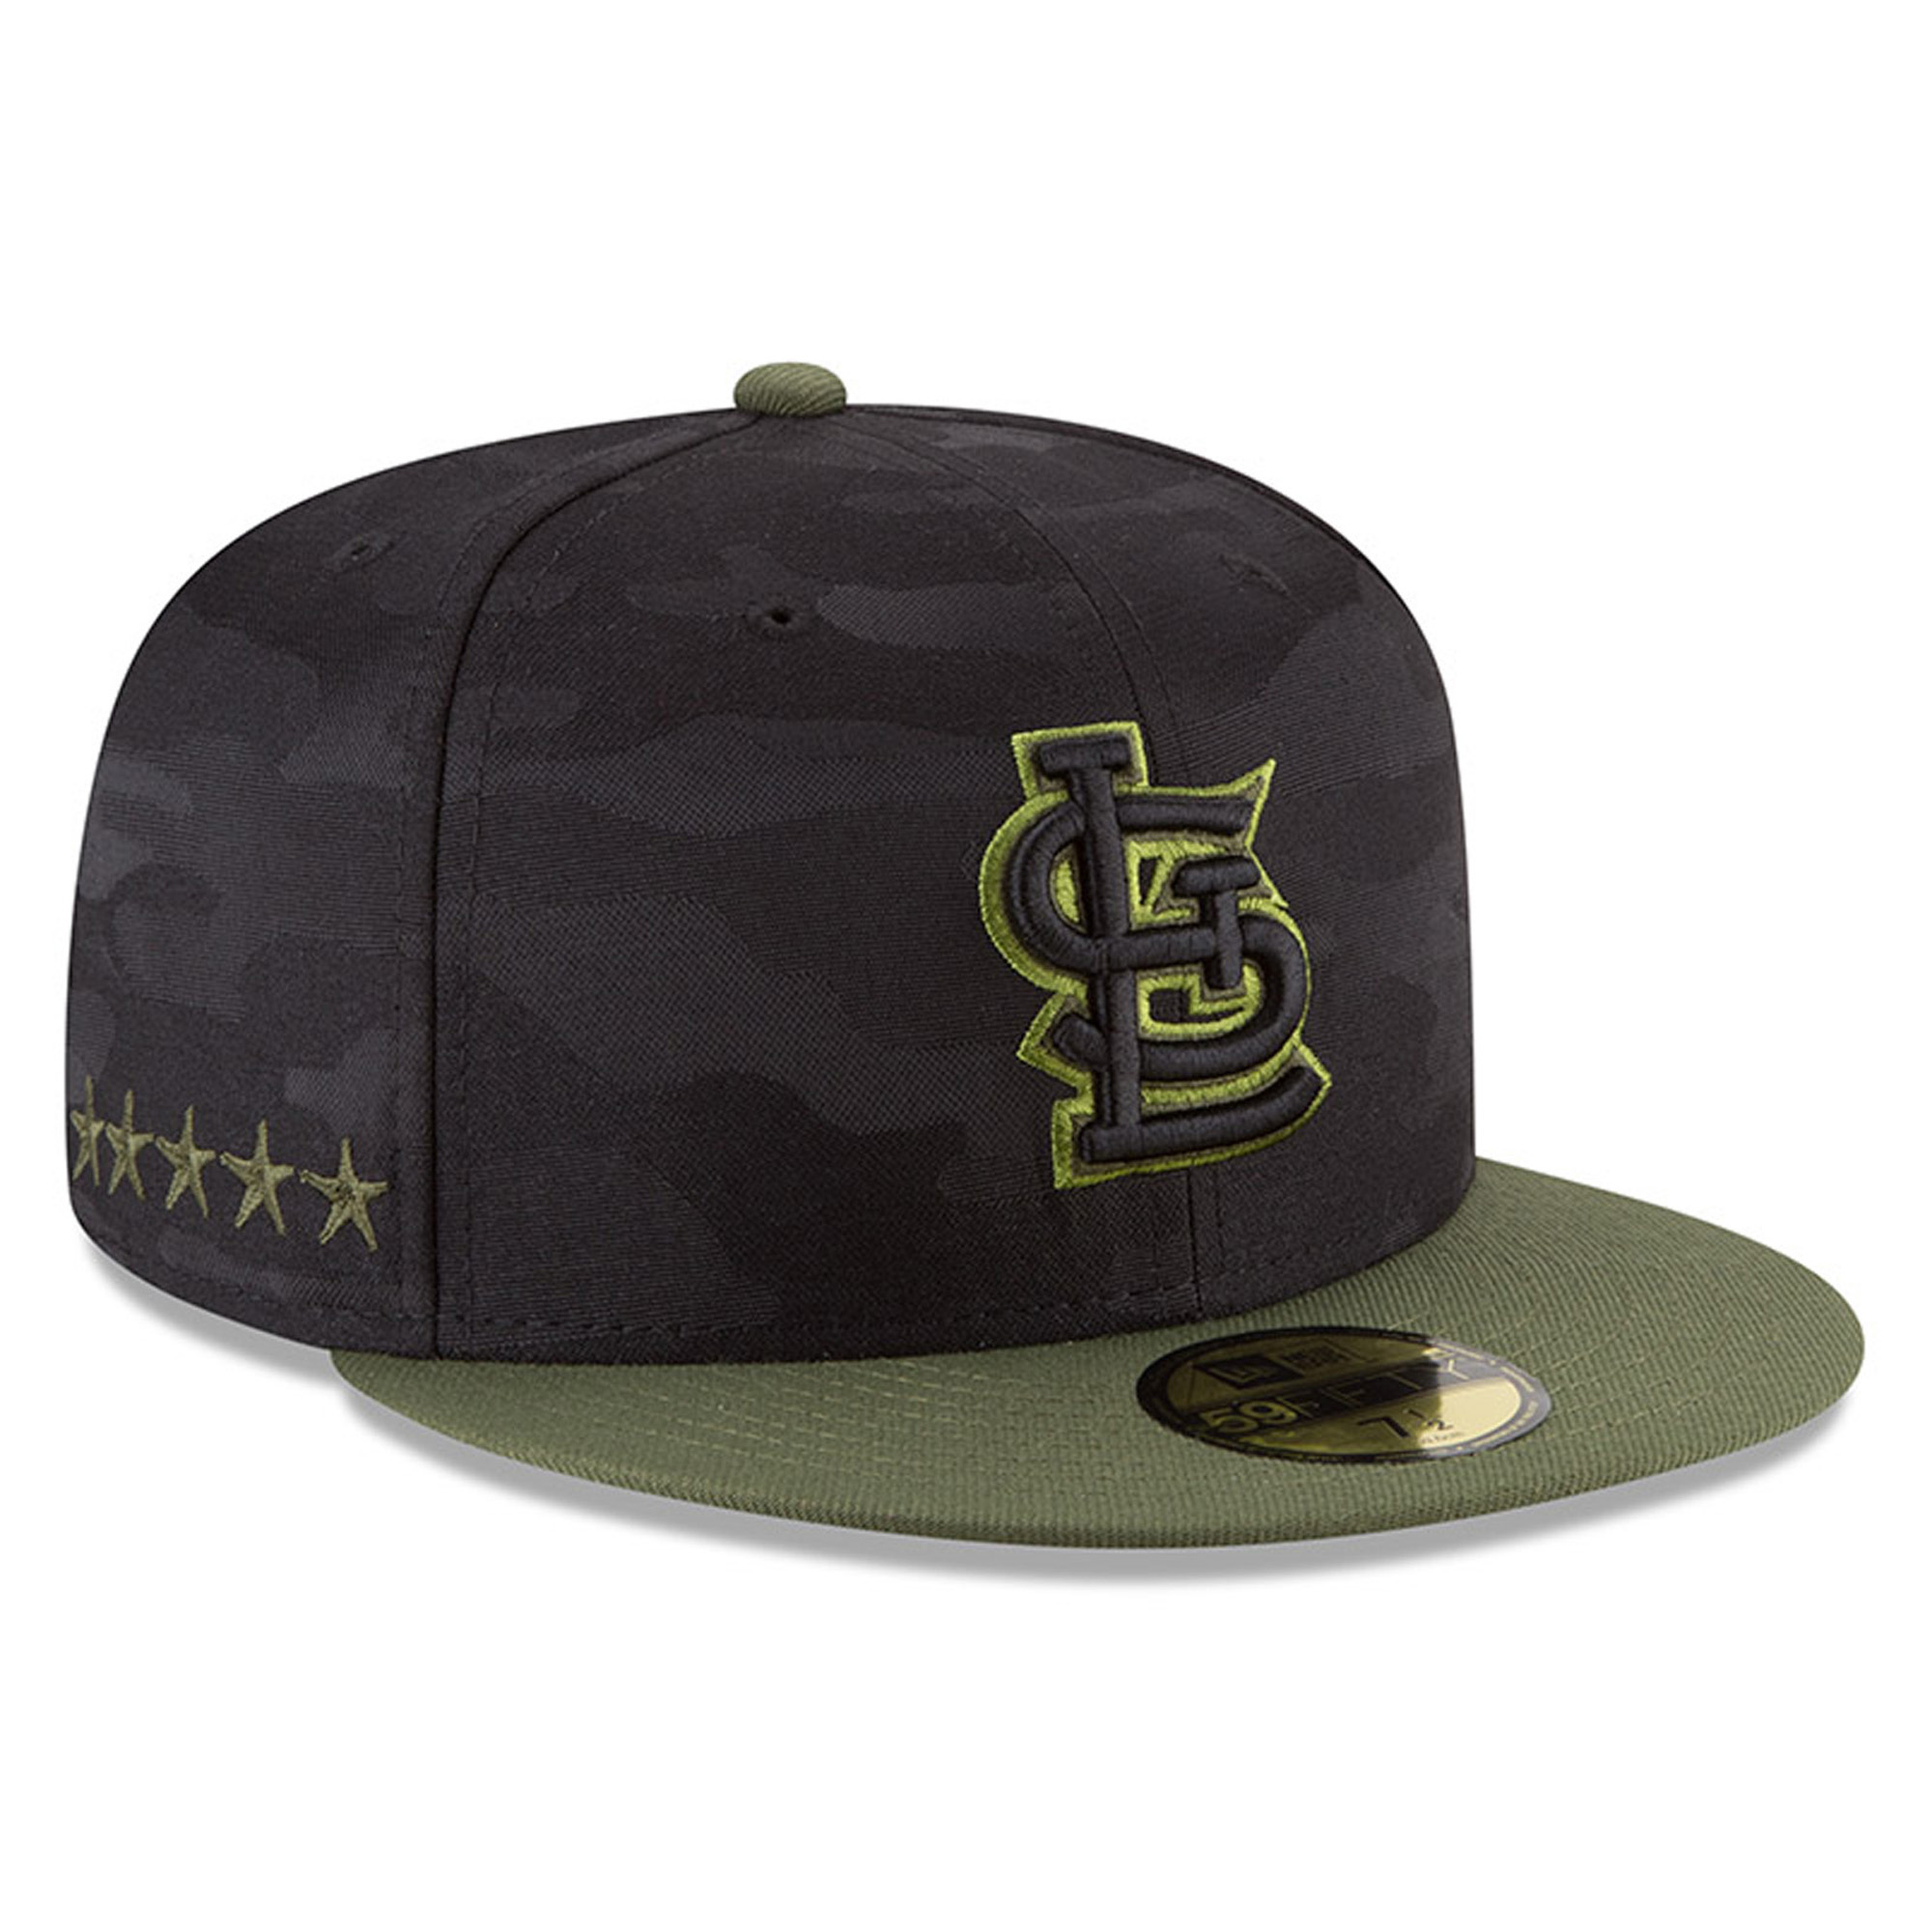 St. Louis Cardinals New Era 2018 Memorial Day On-Field 59FIFTY Fitted Hat - Black